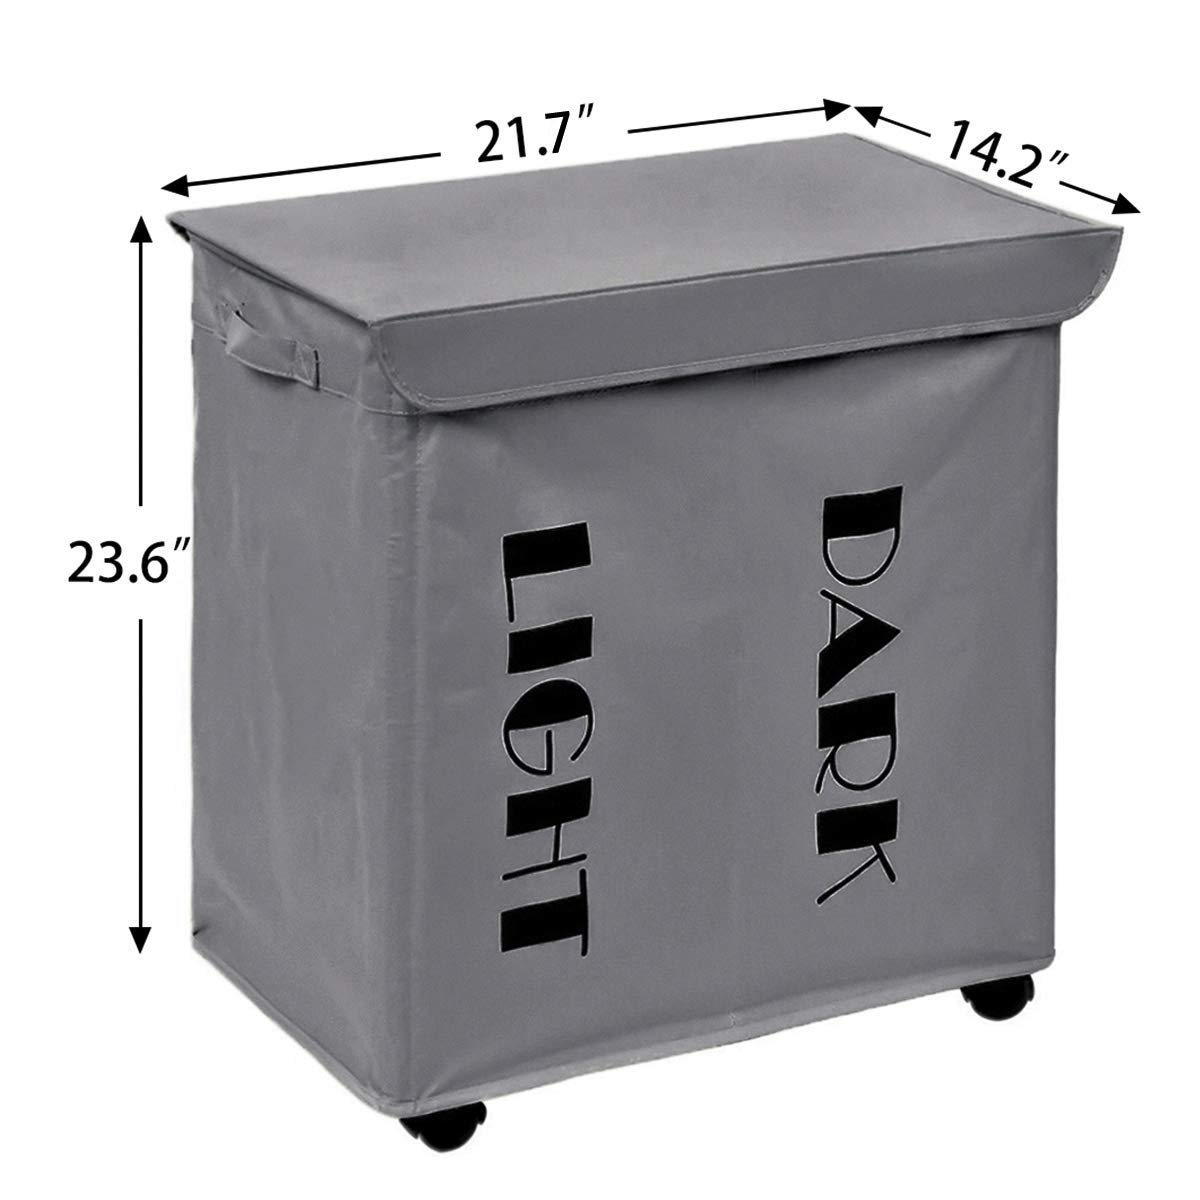 ZERO JET LAG Rolling 2 Section Double Laundry Hamper with Stand Foldable Large Dirty Laundry Hamper Basket Handy Waterproof Sorter and Organizer on Wheels 21.7\